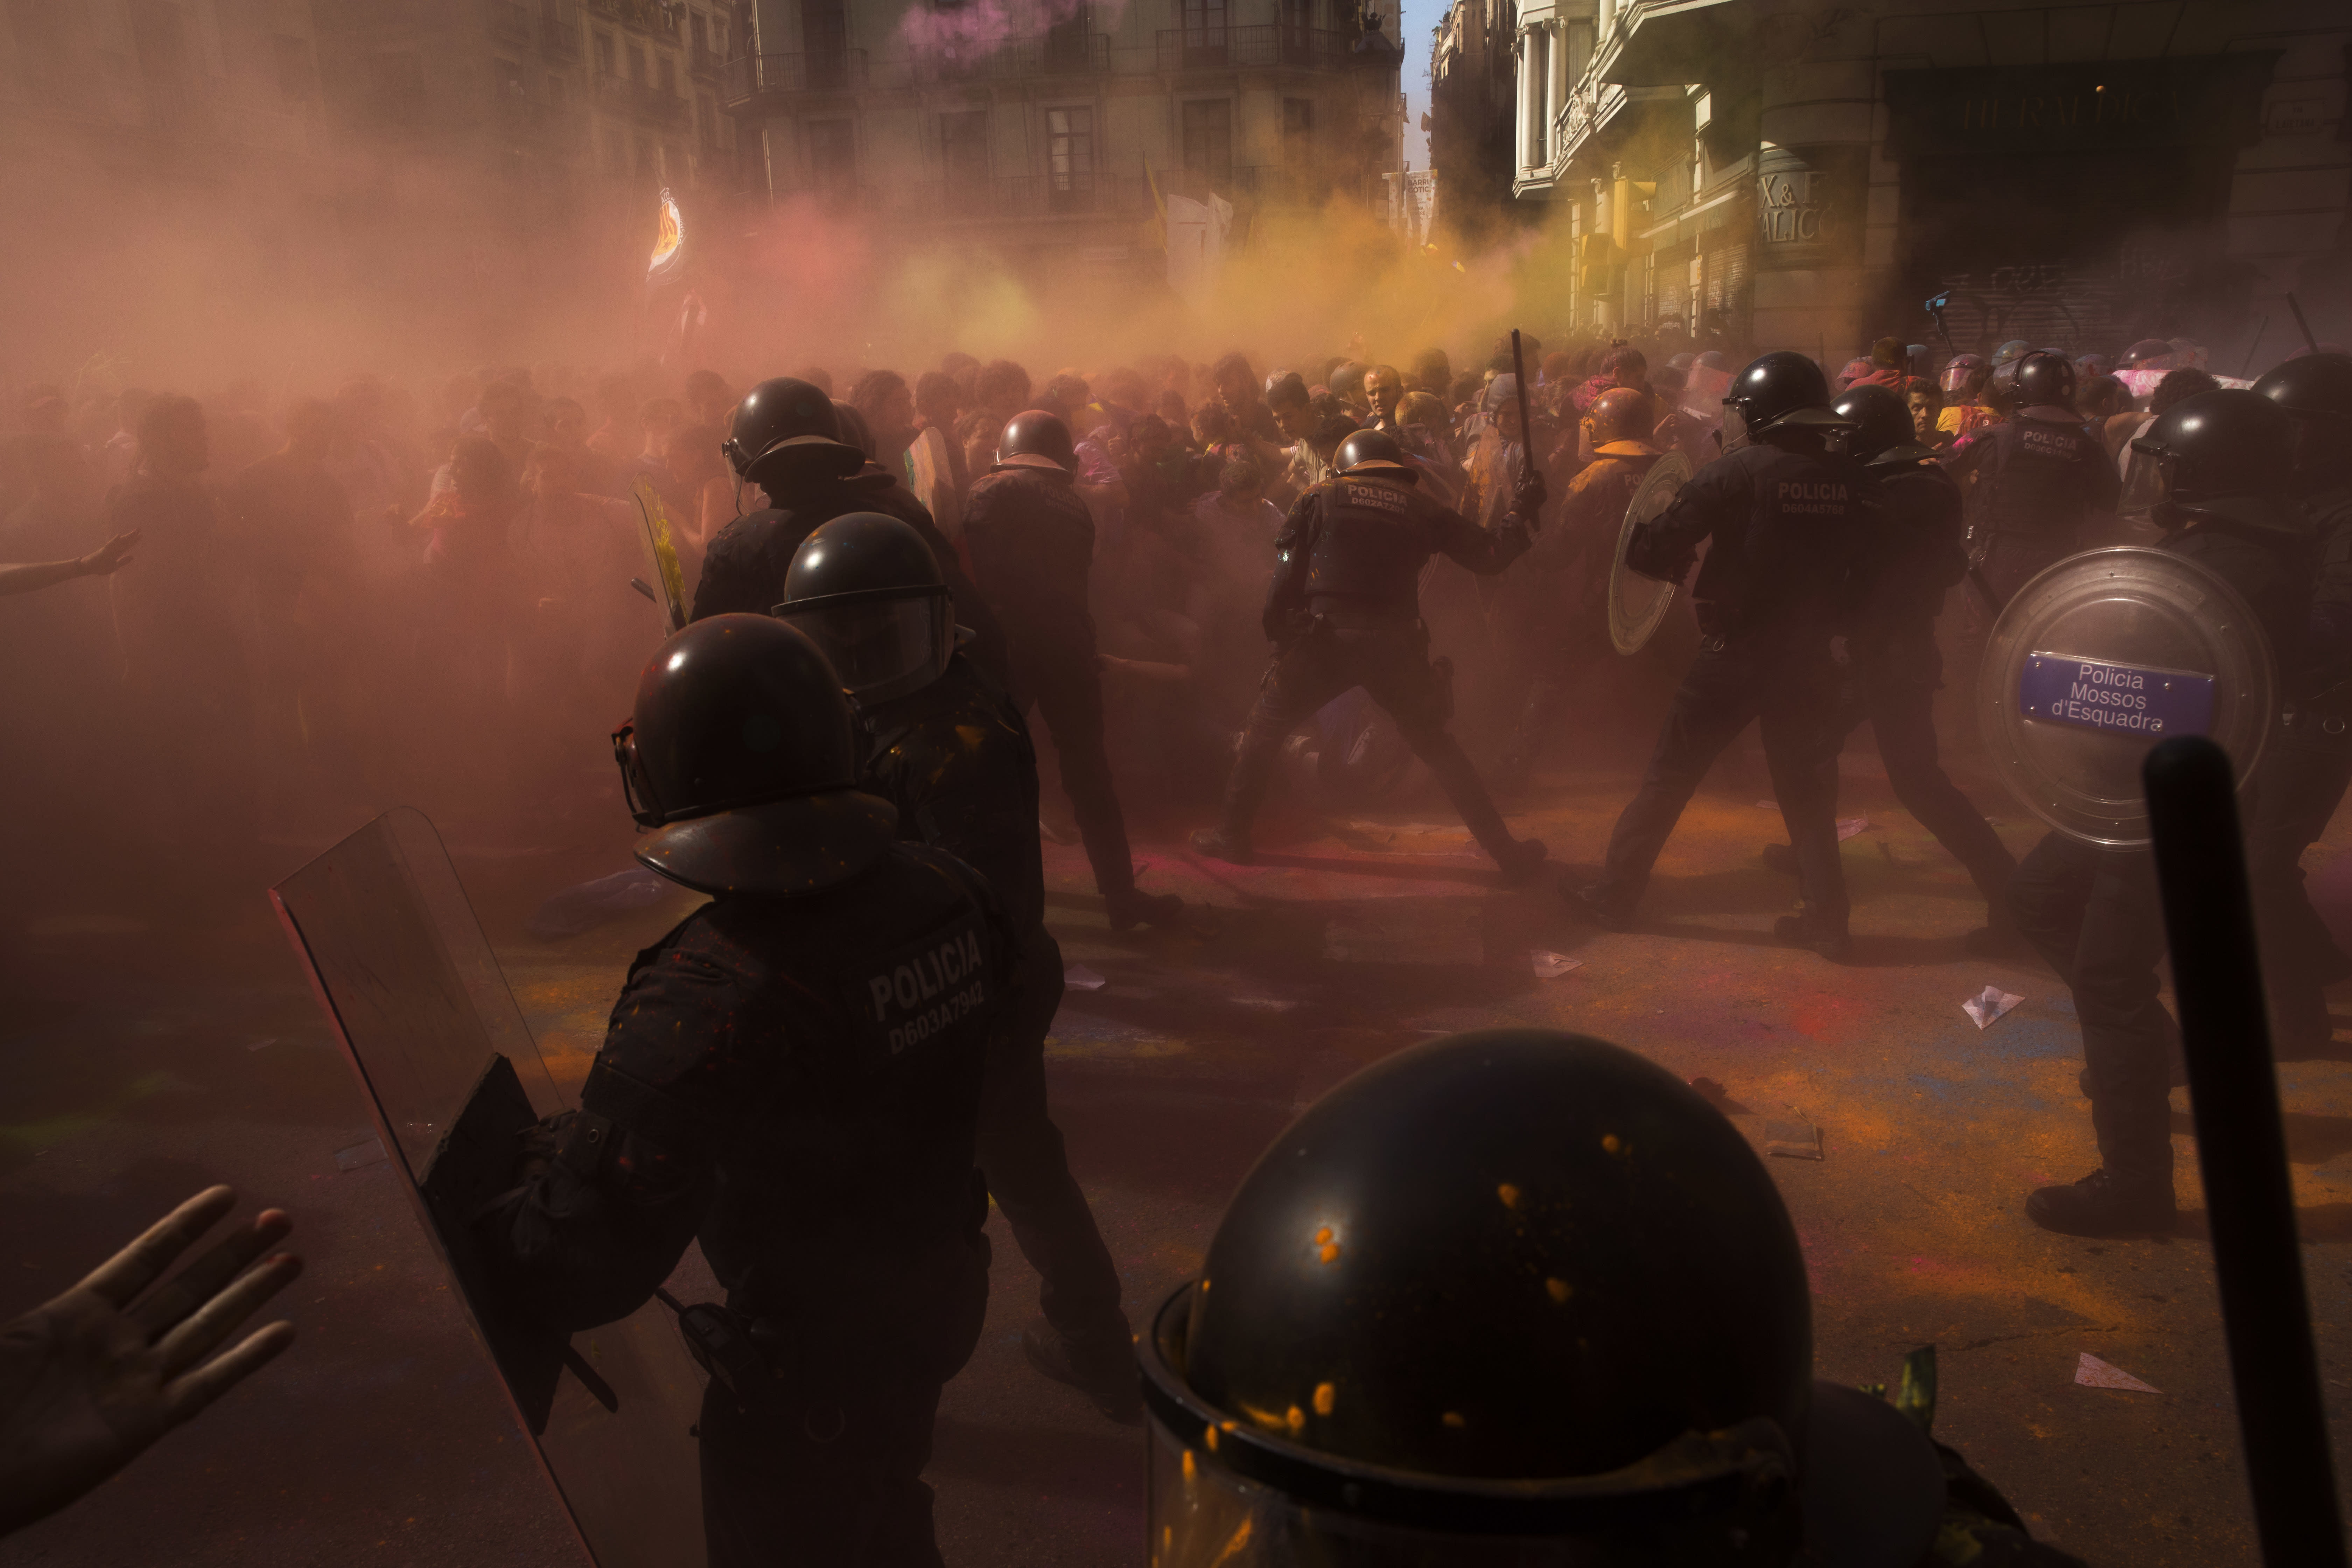 Catalan police officers clash with pro independence demonstrators on their way to meet demonstrations by member and supporters of National Police and Guardia Civil, as colored powder is seen in the air after being thrown by protesters, in Barcelona on Saturday, Sept. 29, 2018. (AP Photo/Emilio Morenatti)